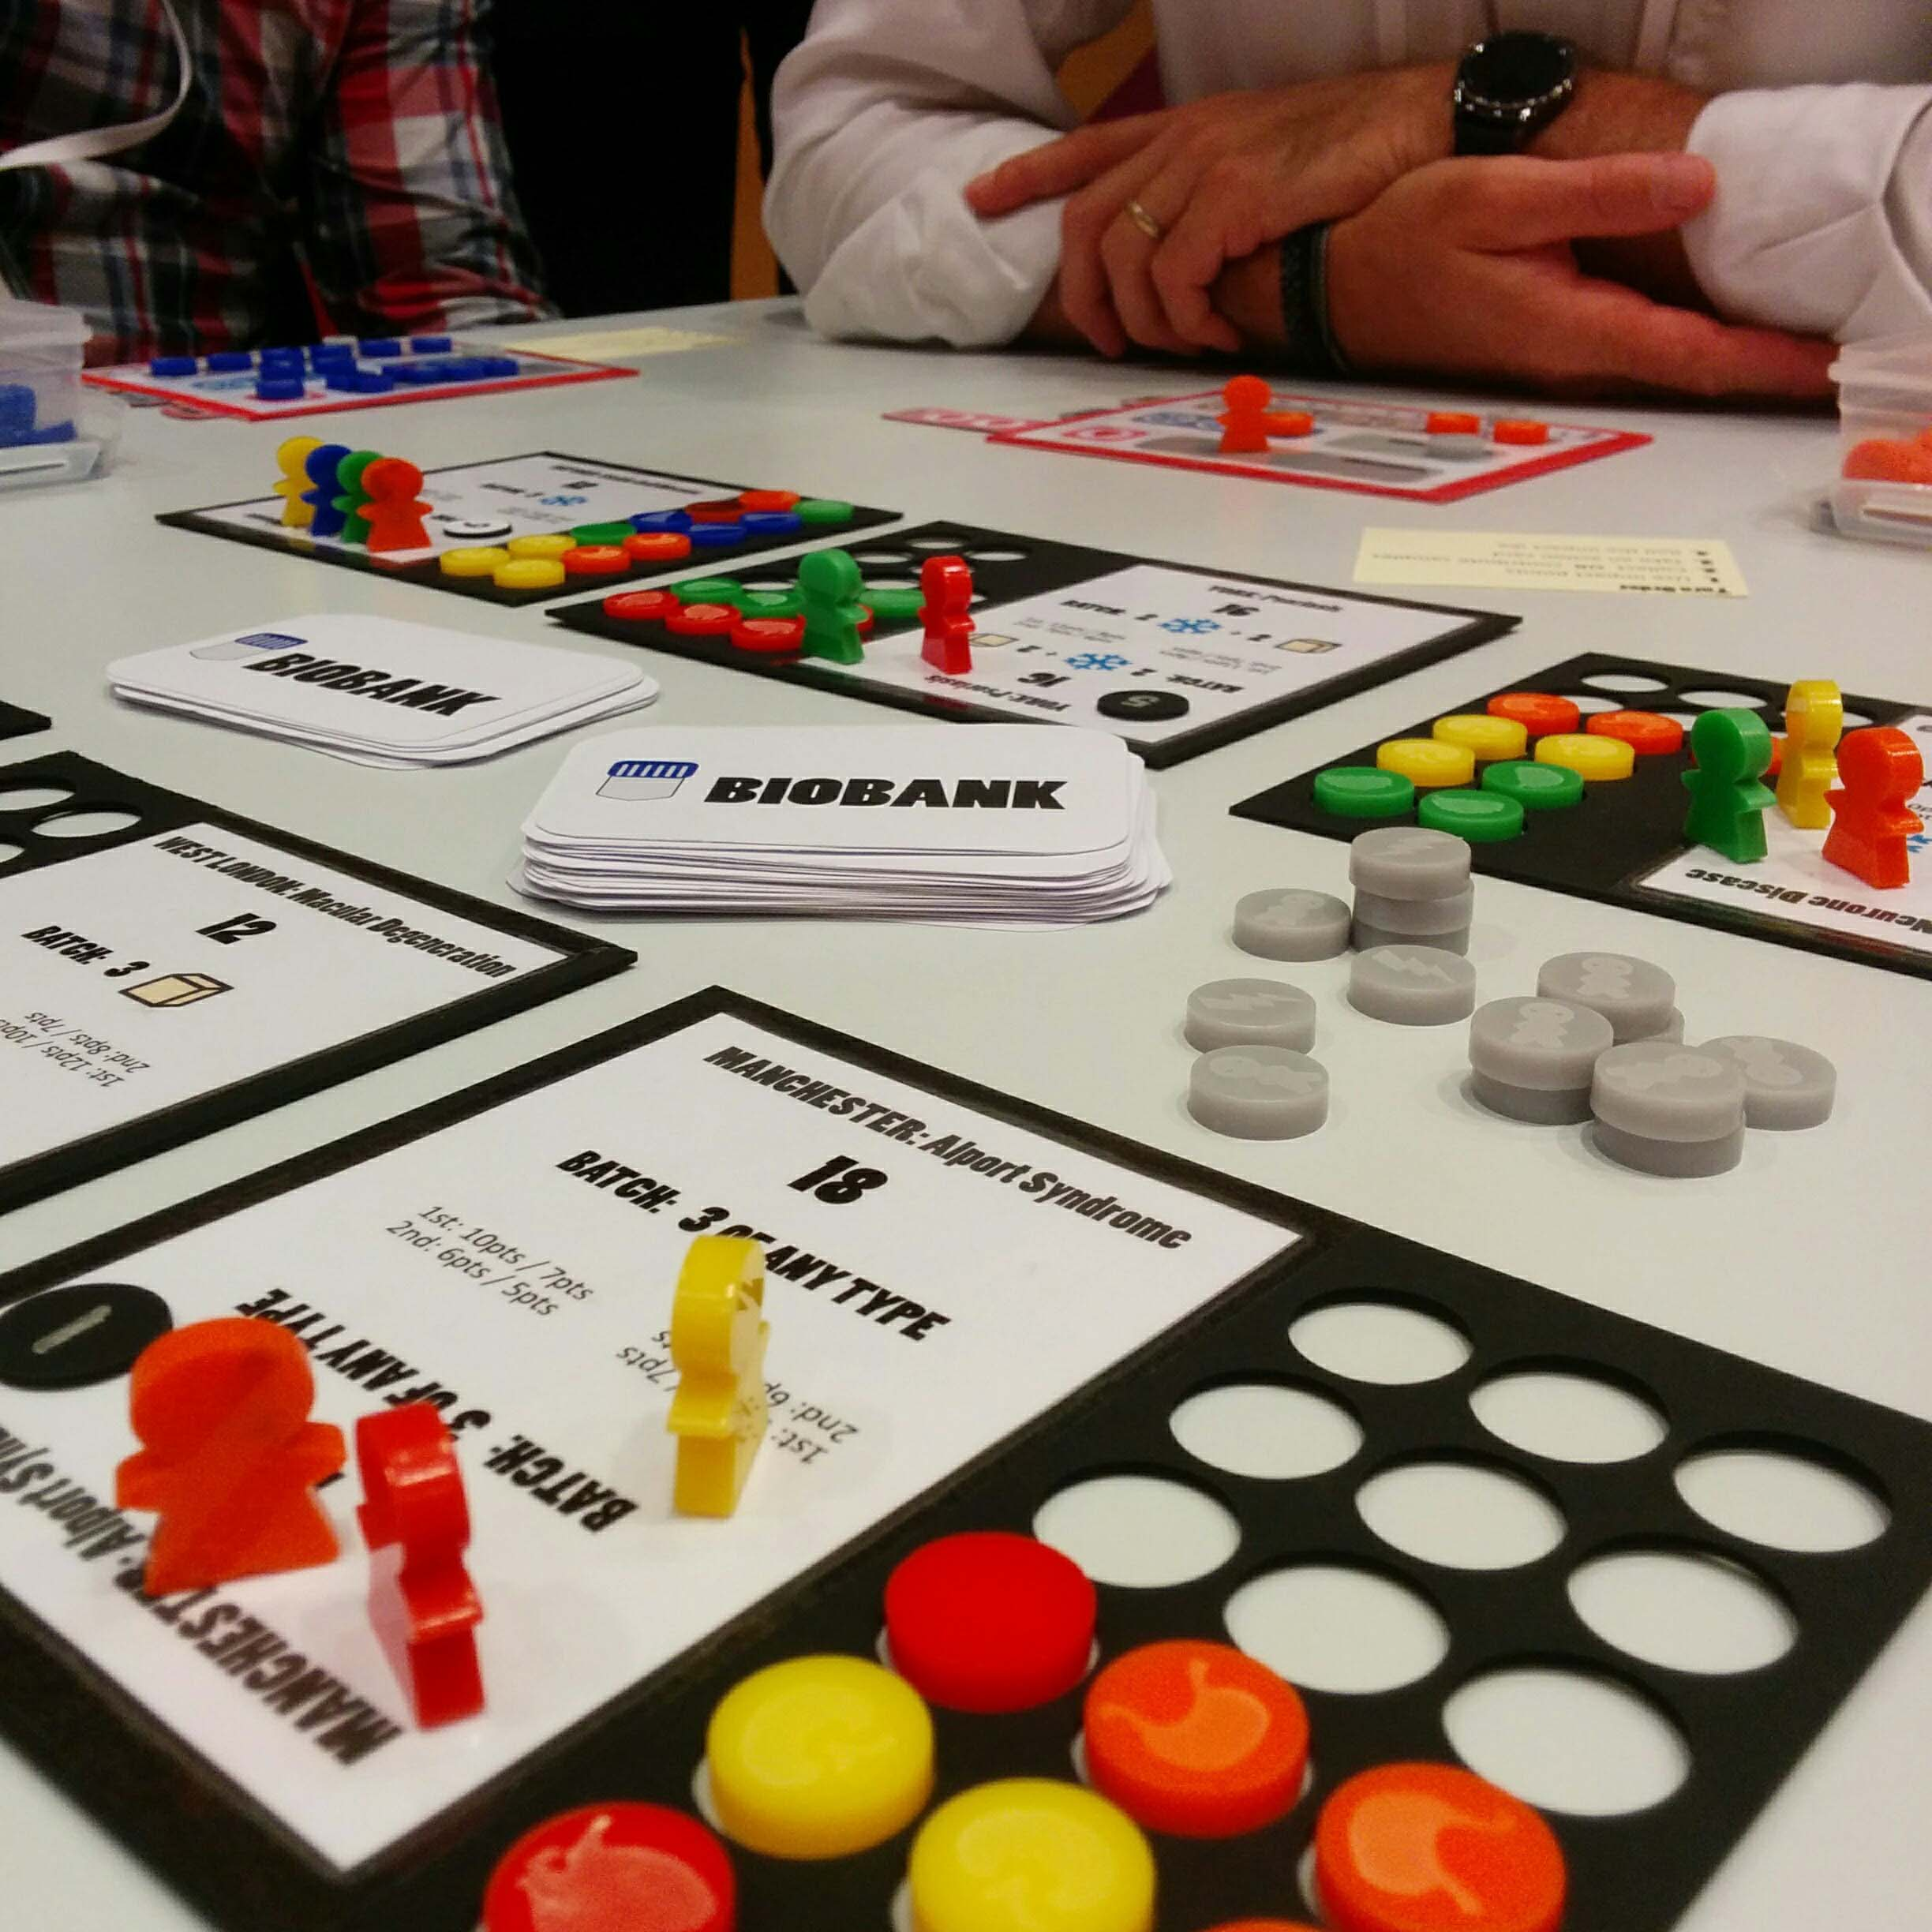 A black player board for a board game that is half filled with with red and yellow circular pieces. There are also red and yellow meeples on the board. A person's folded arms can be seen in the background.